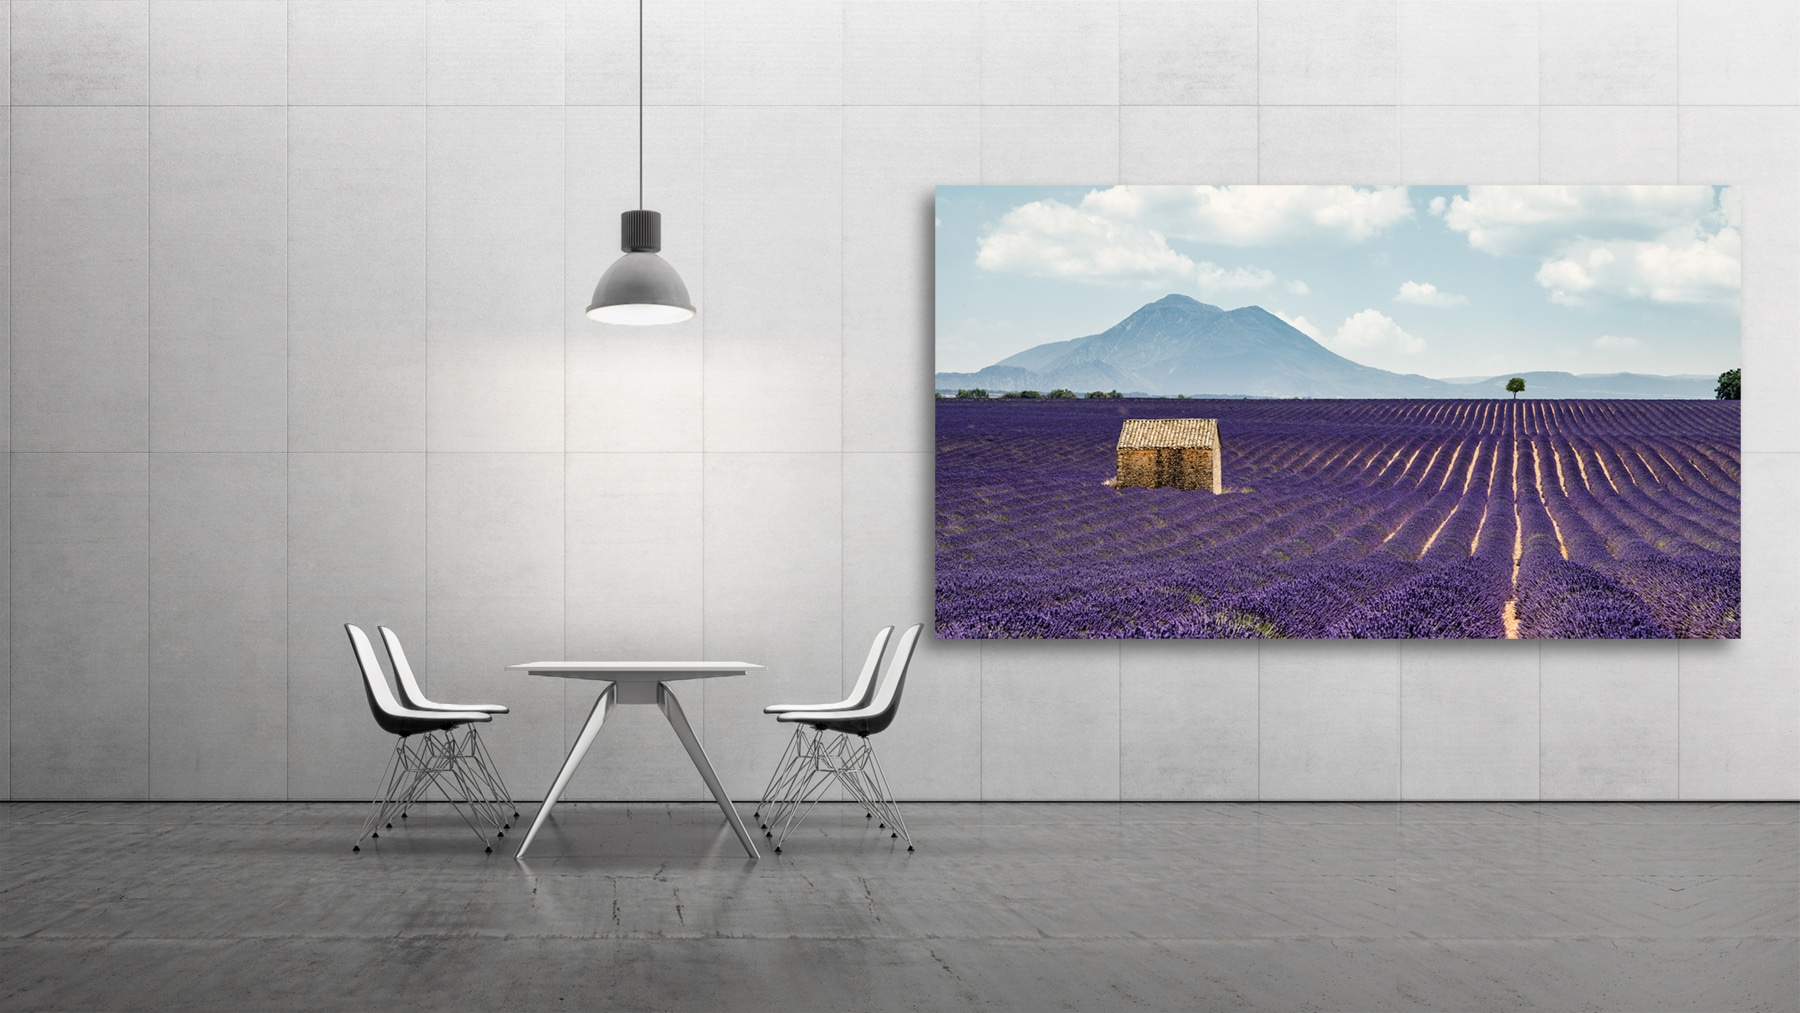 France - Provence - Valensole - Lavender Wave © by Gerry Pacher